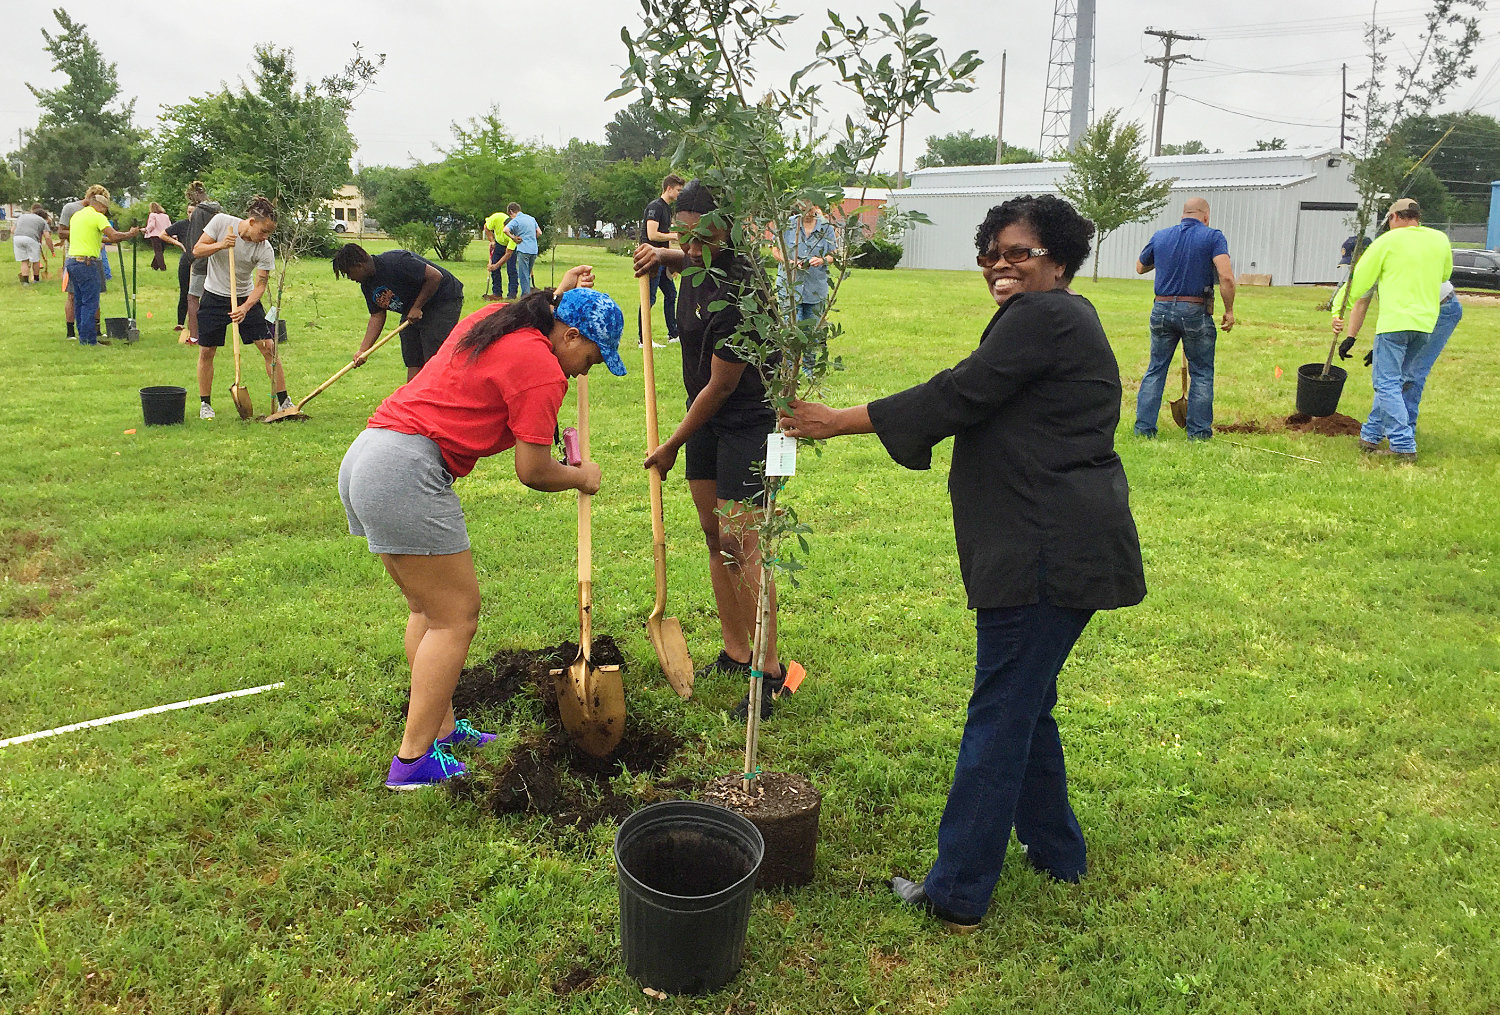 Mineola Rotary Club with Mineola High School seniors, city organization leaders and staff planted 20 live oak trees in the Iron Horse Square area Monday. The shade from these trees will provide for generations of park and mini train riders.